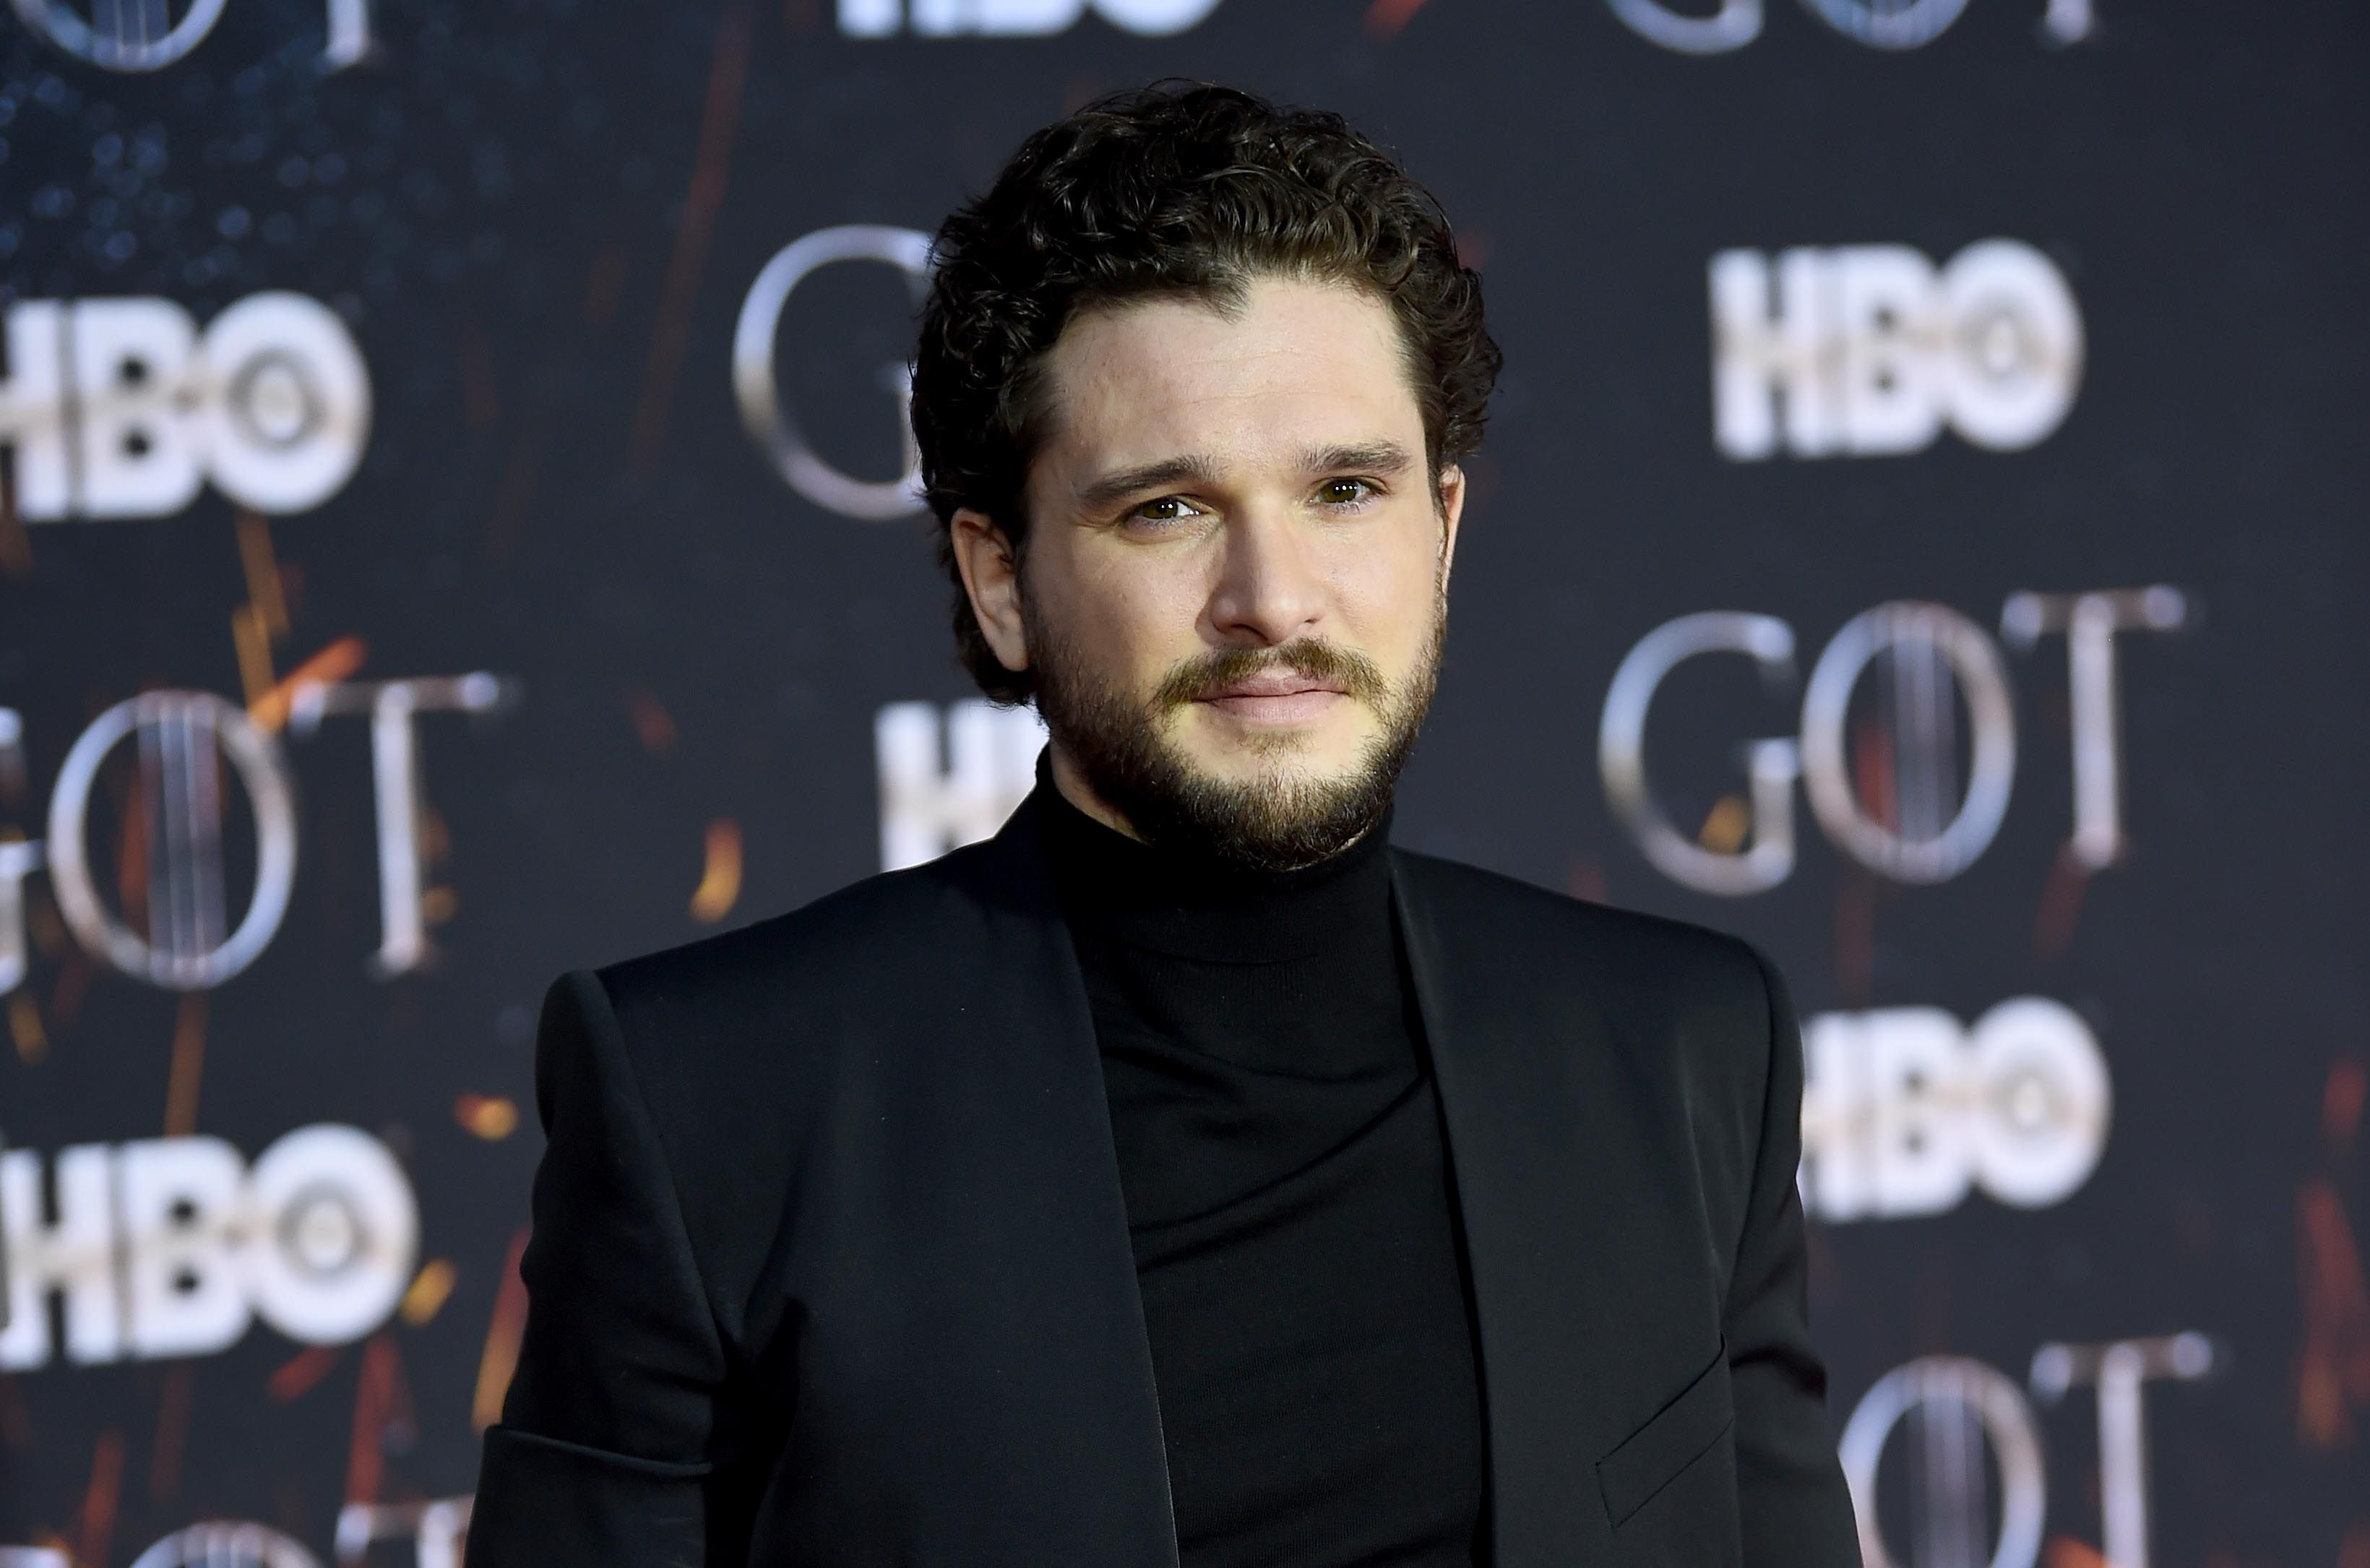 Kit Harington Finally Confirms That He Wears 'High Heels' On Game of Thrones